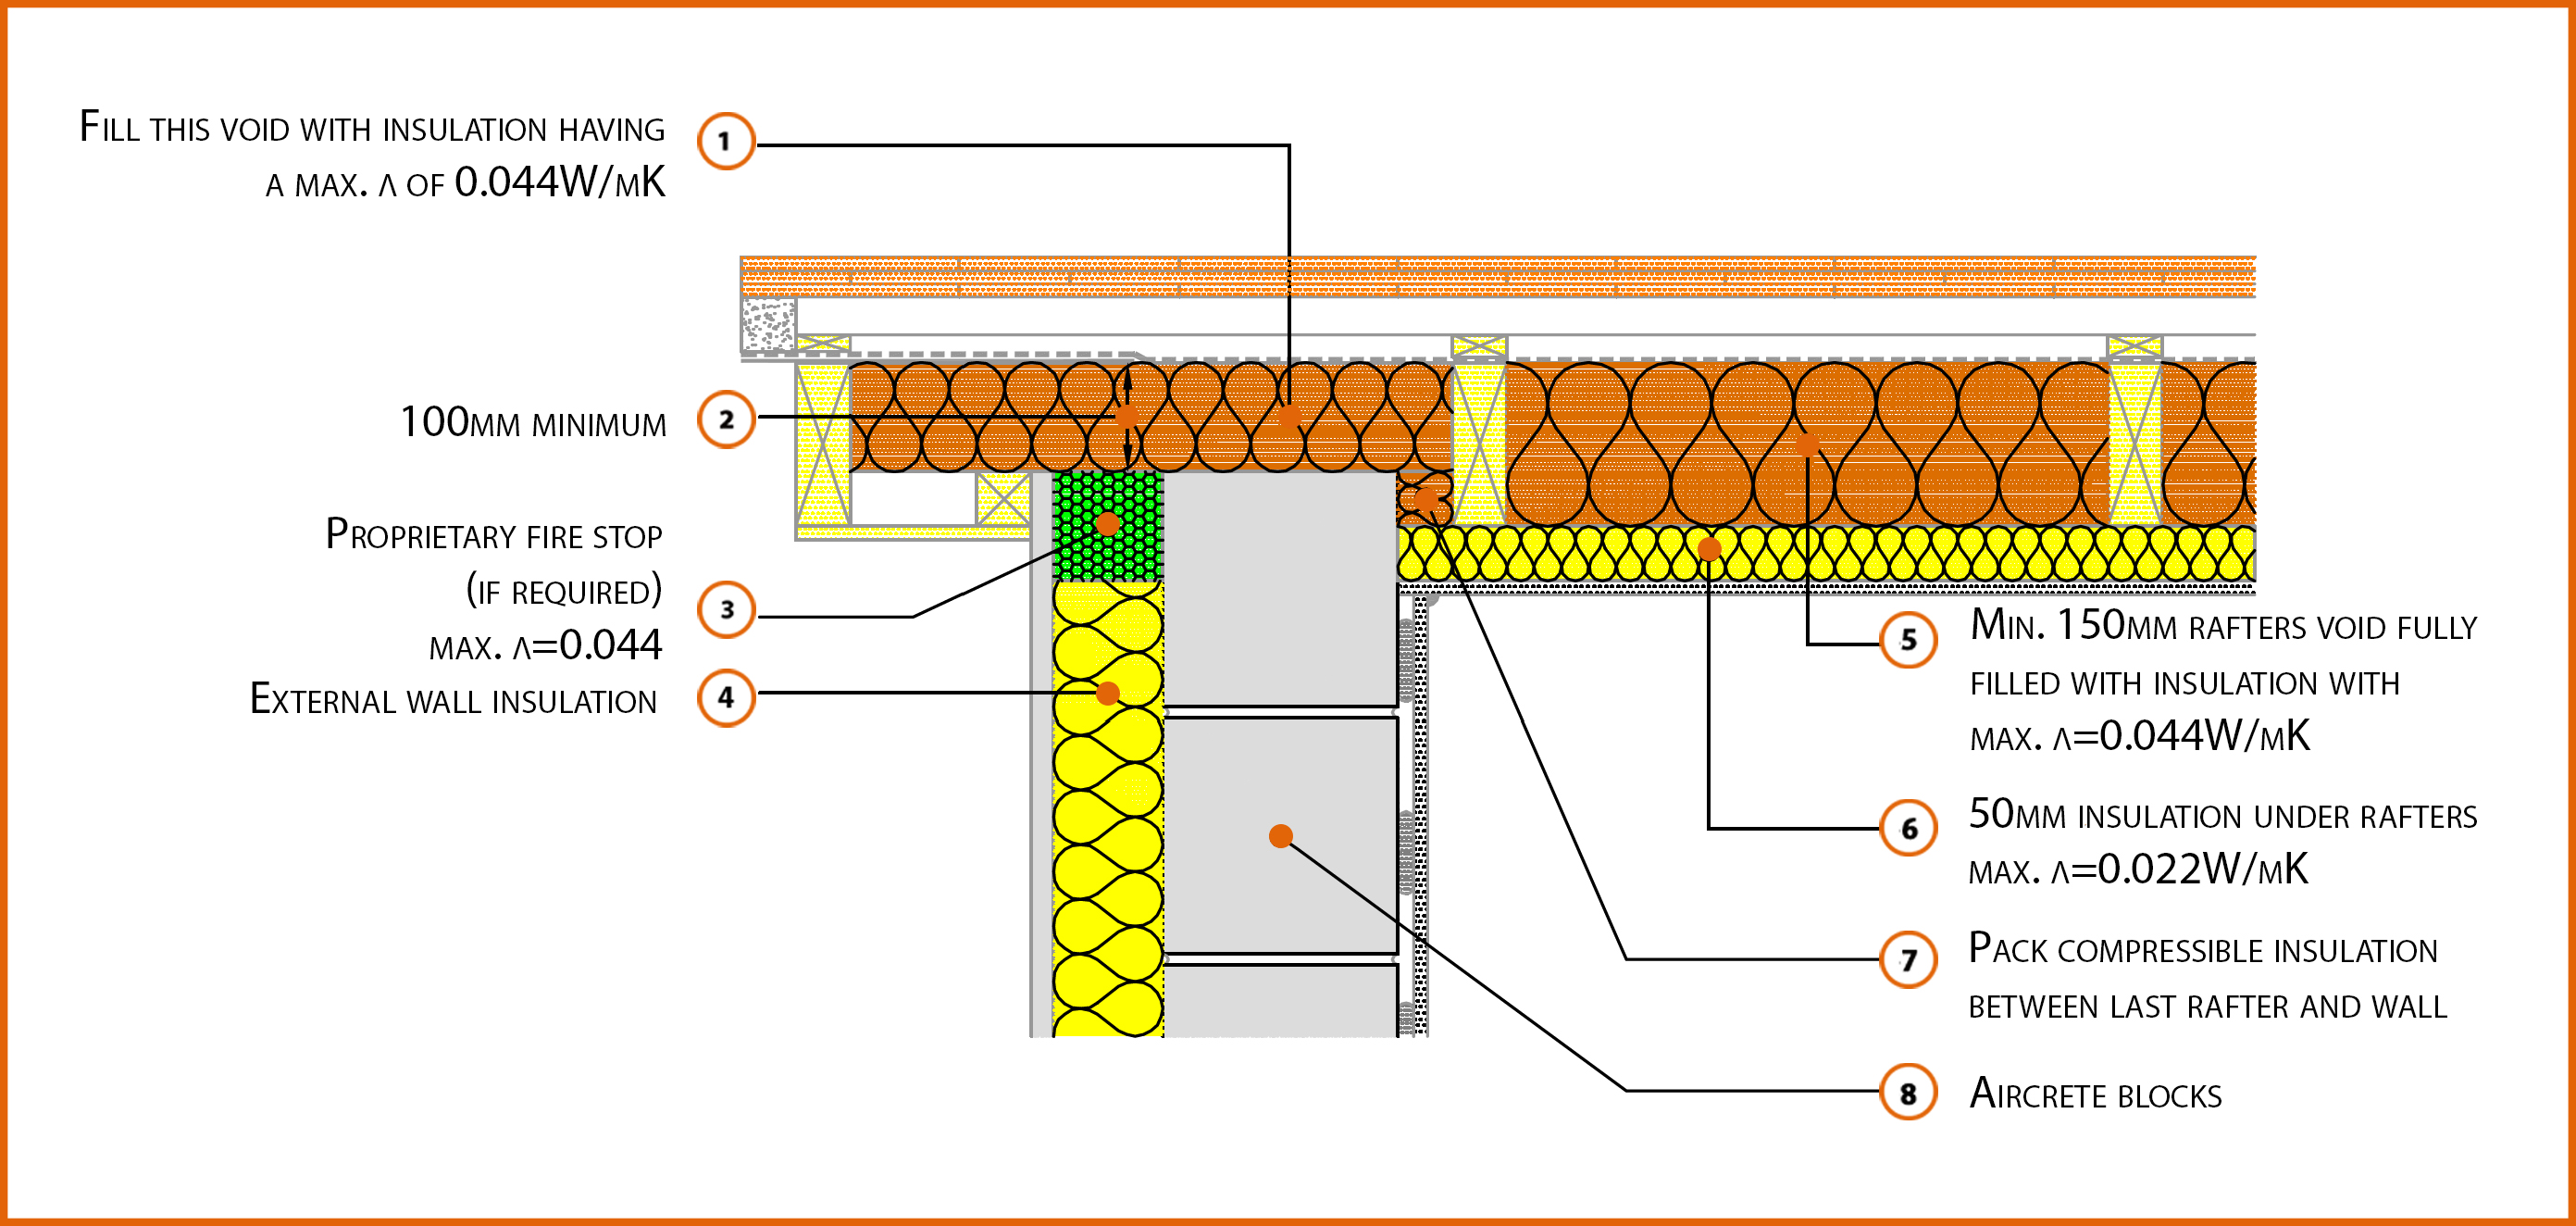 E13SMEW6 Pitched Roof Gable Insulation at Rafter level | LABC